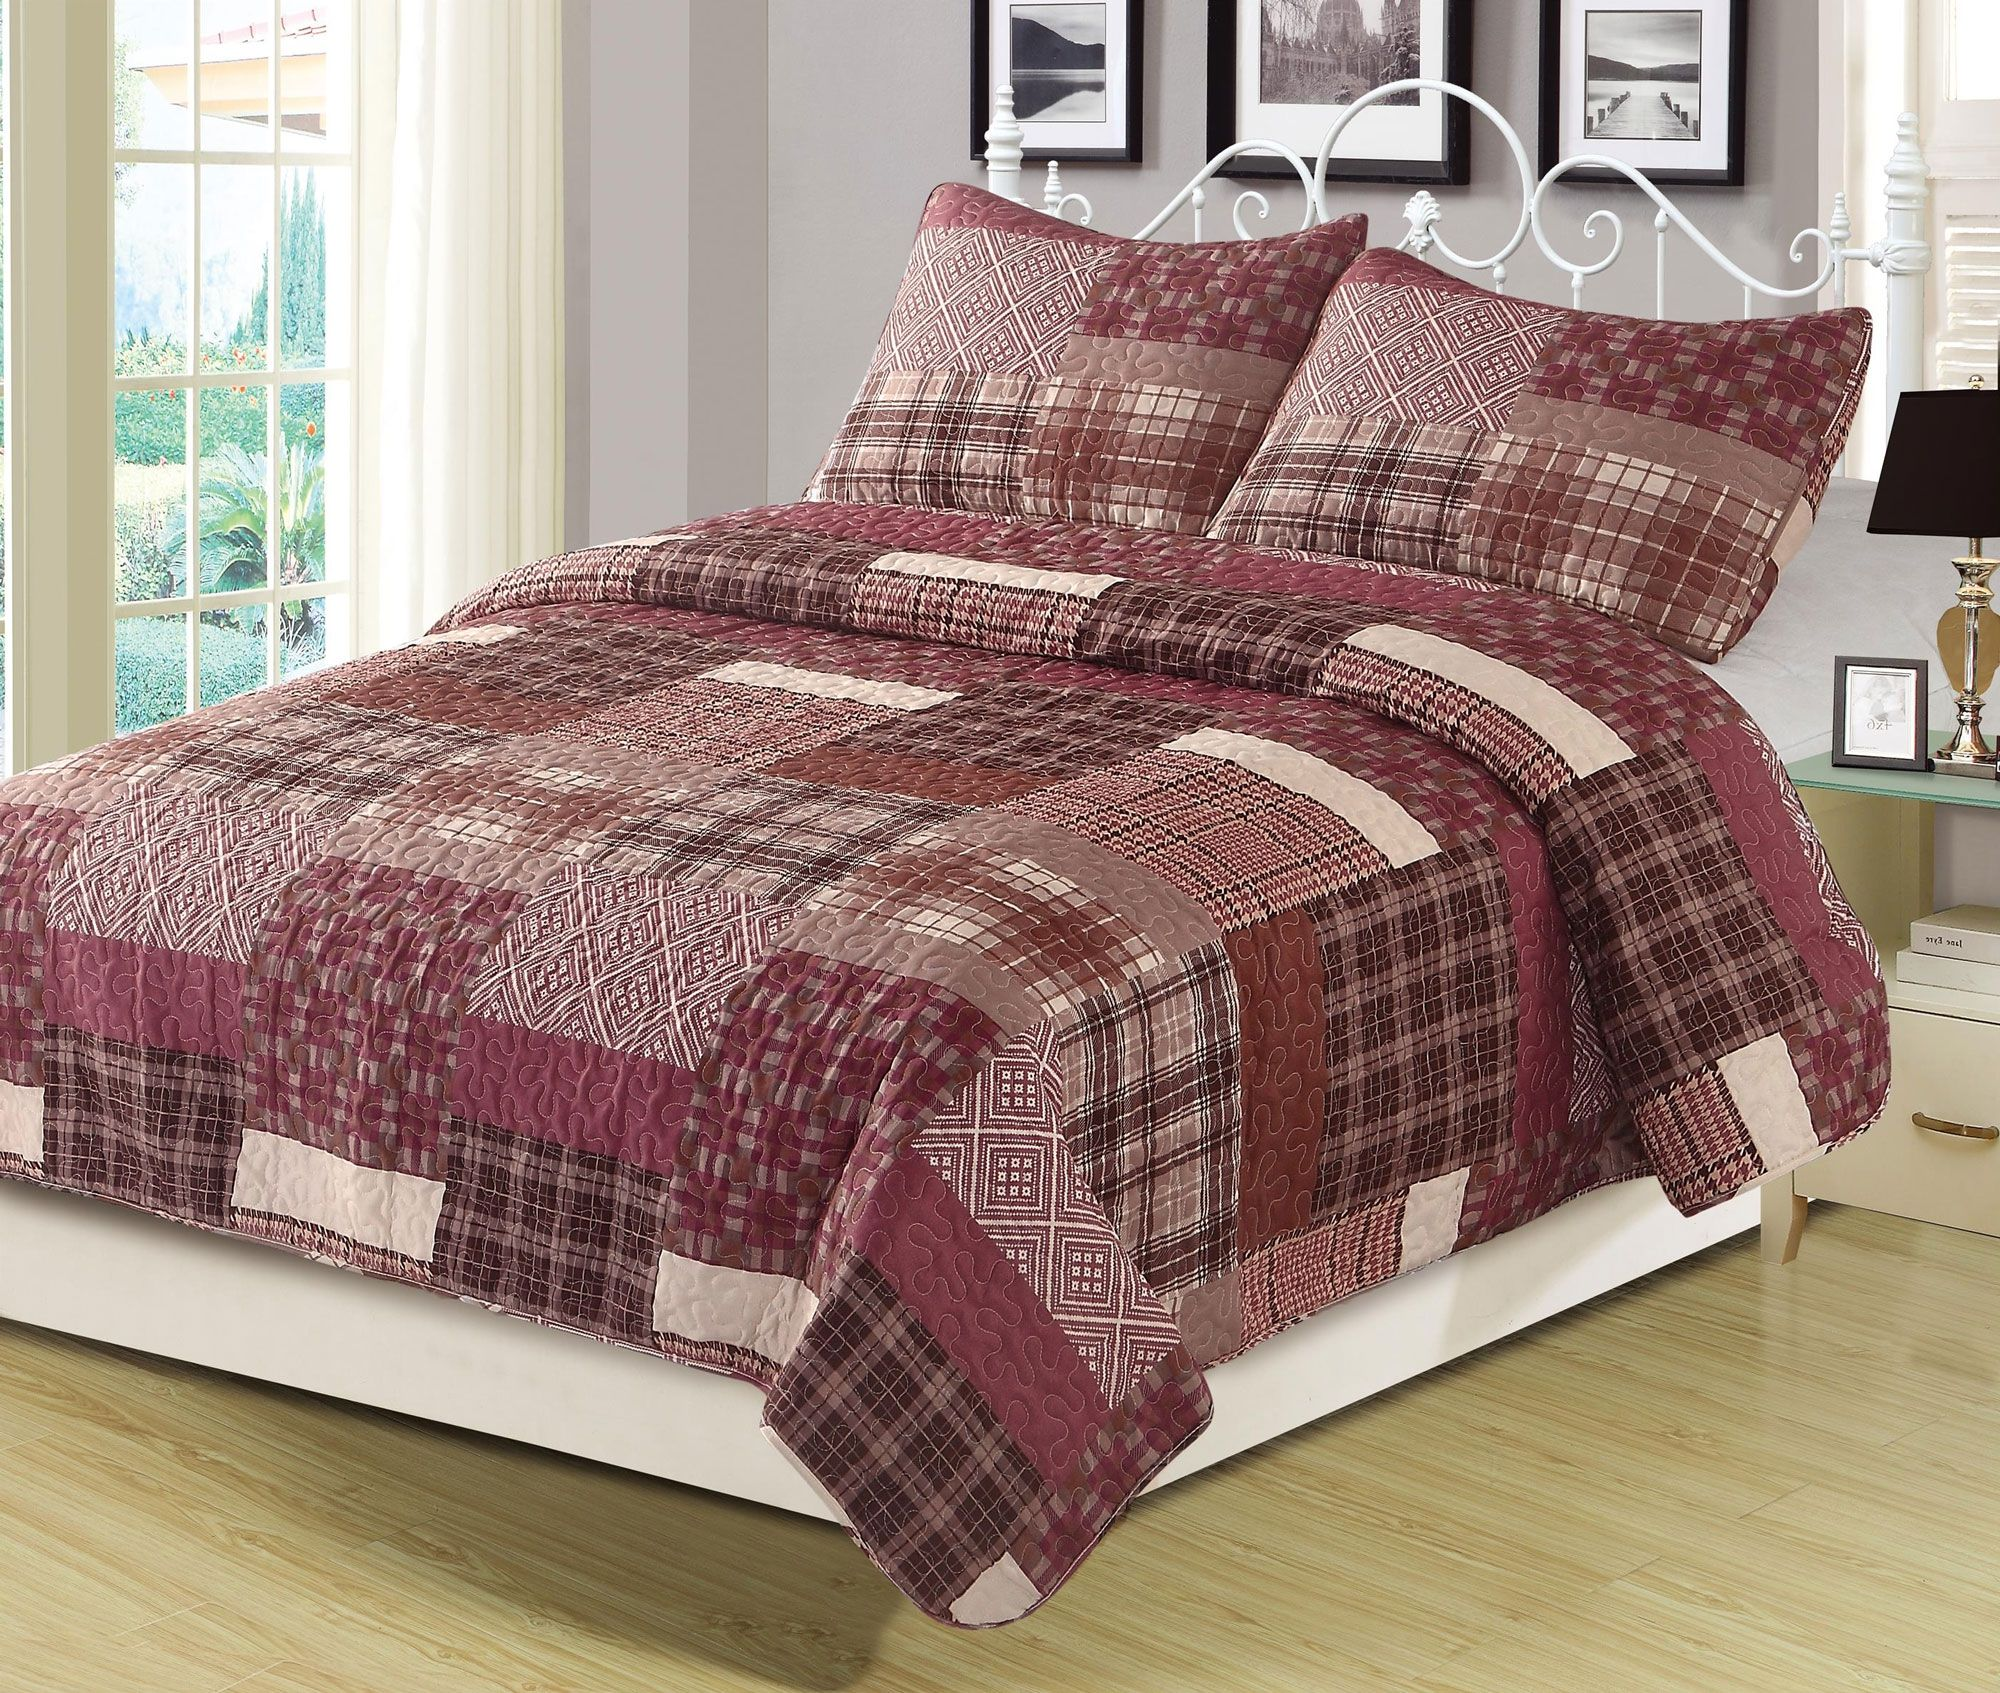 Red Plaid Patchwork 3 Piece Full Queen Quilt And Sham Set Walmart Com Patchwork Bedspread King Quilt Bedding King Quilt